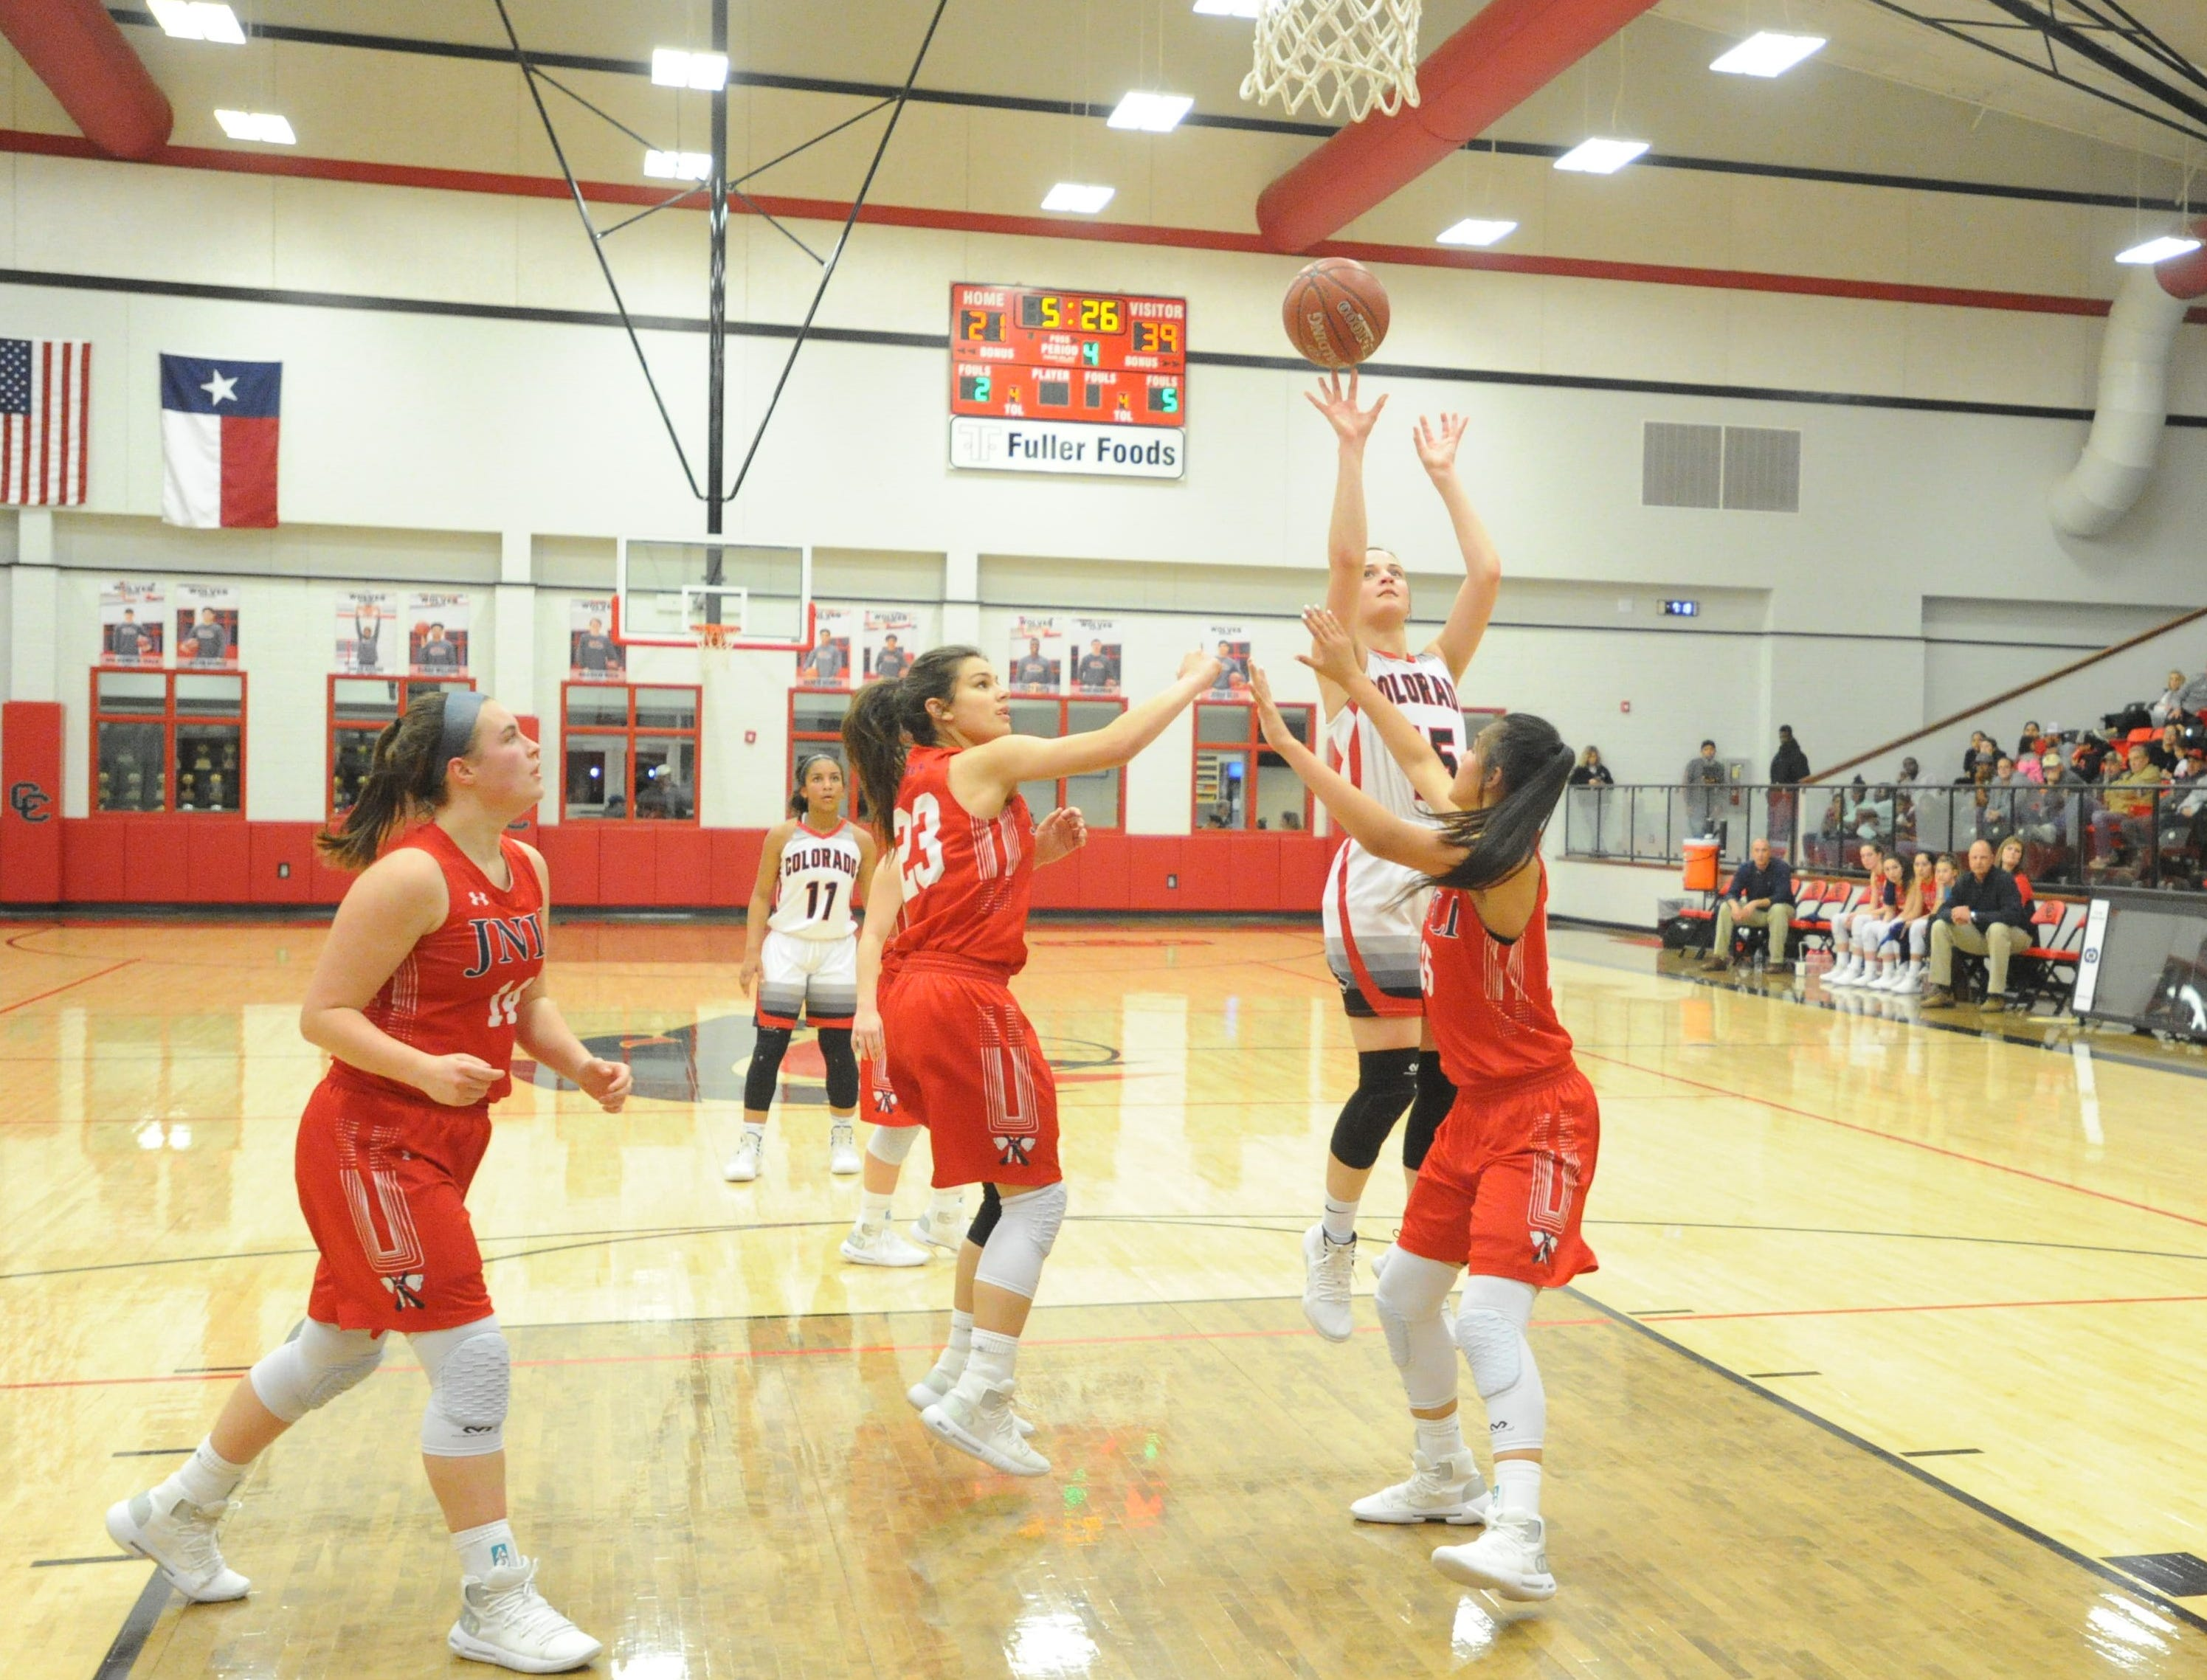 Colorado City guard Kaci Hudson takes a shot in the lane against Jim Ned. The Lady Indians topped the Lady Wolves 43-27 at Colorado High School on Jan. 15, 2019.